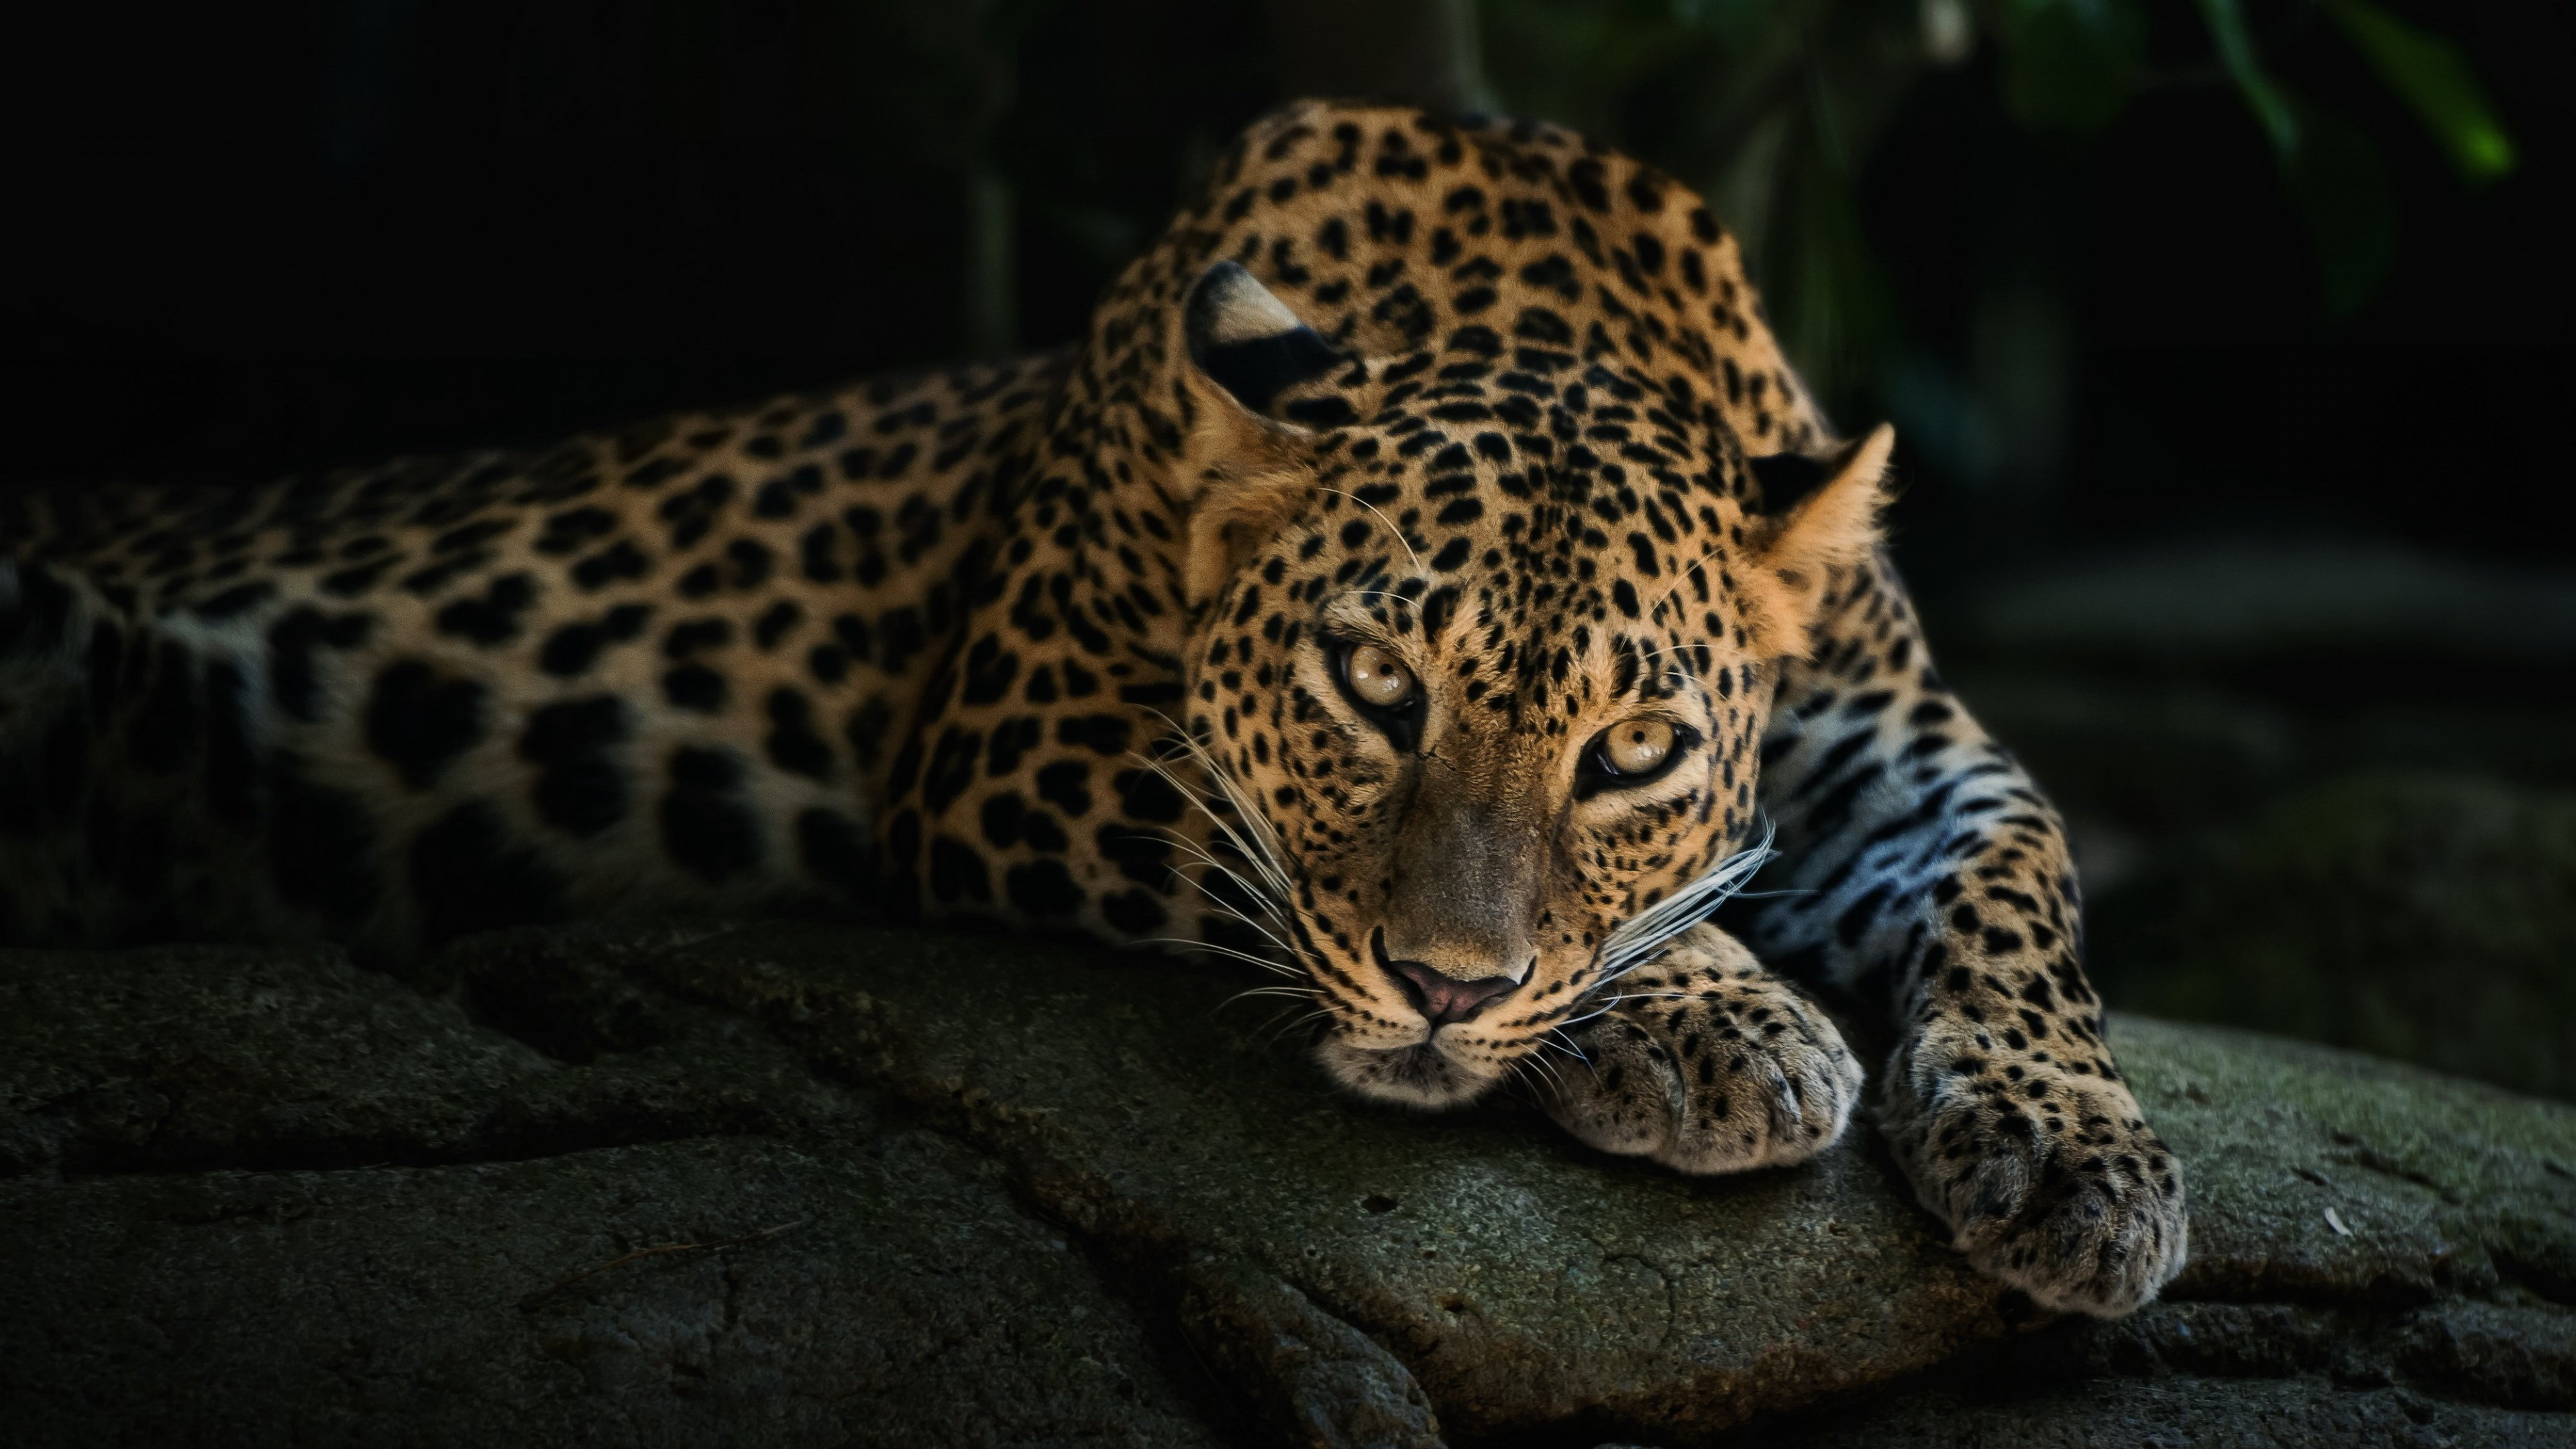 Leopard Lying On The Tree Wallpaper for Desktop 4K 3840x2160